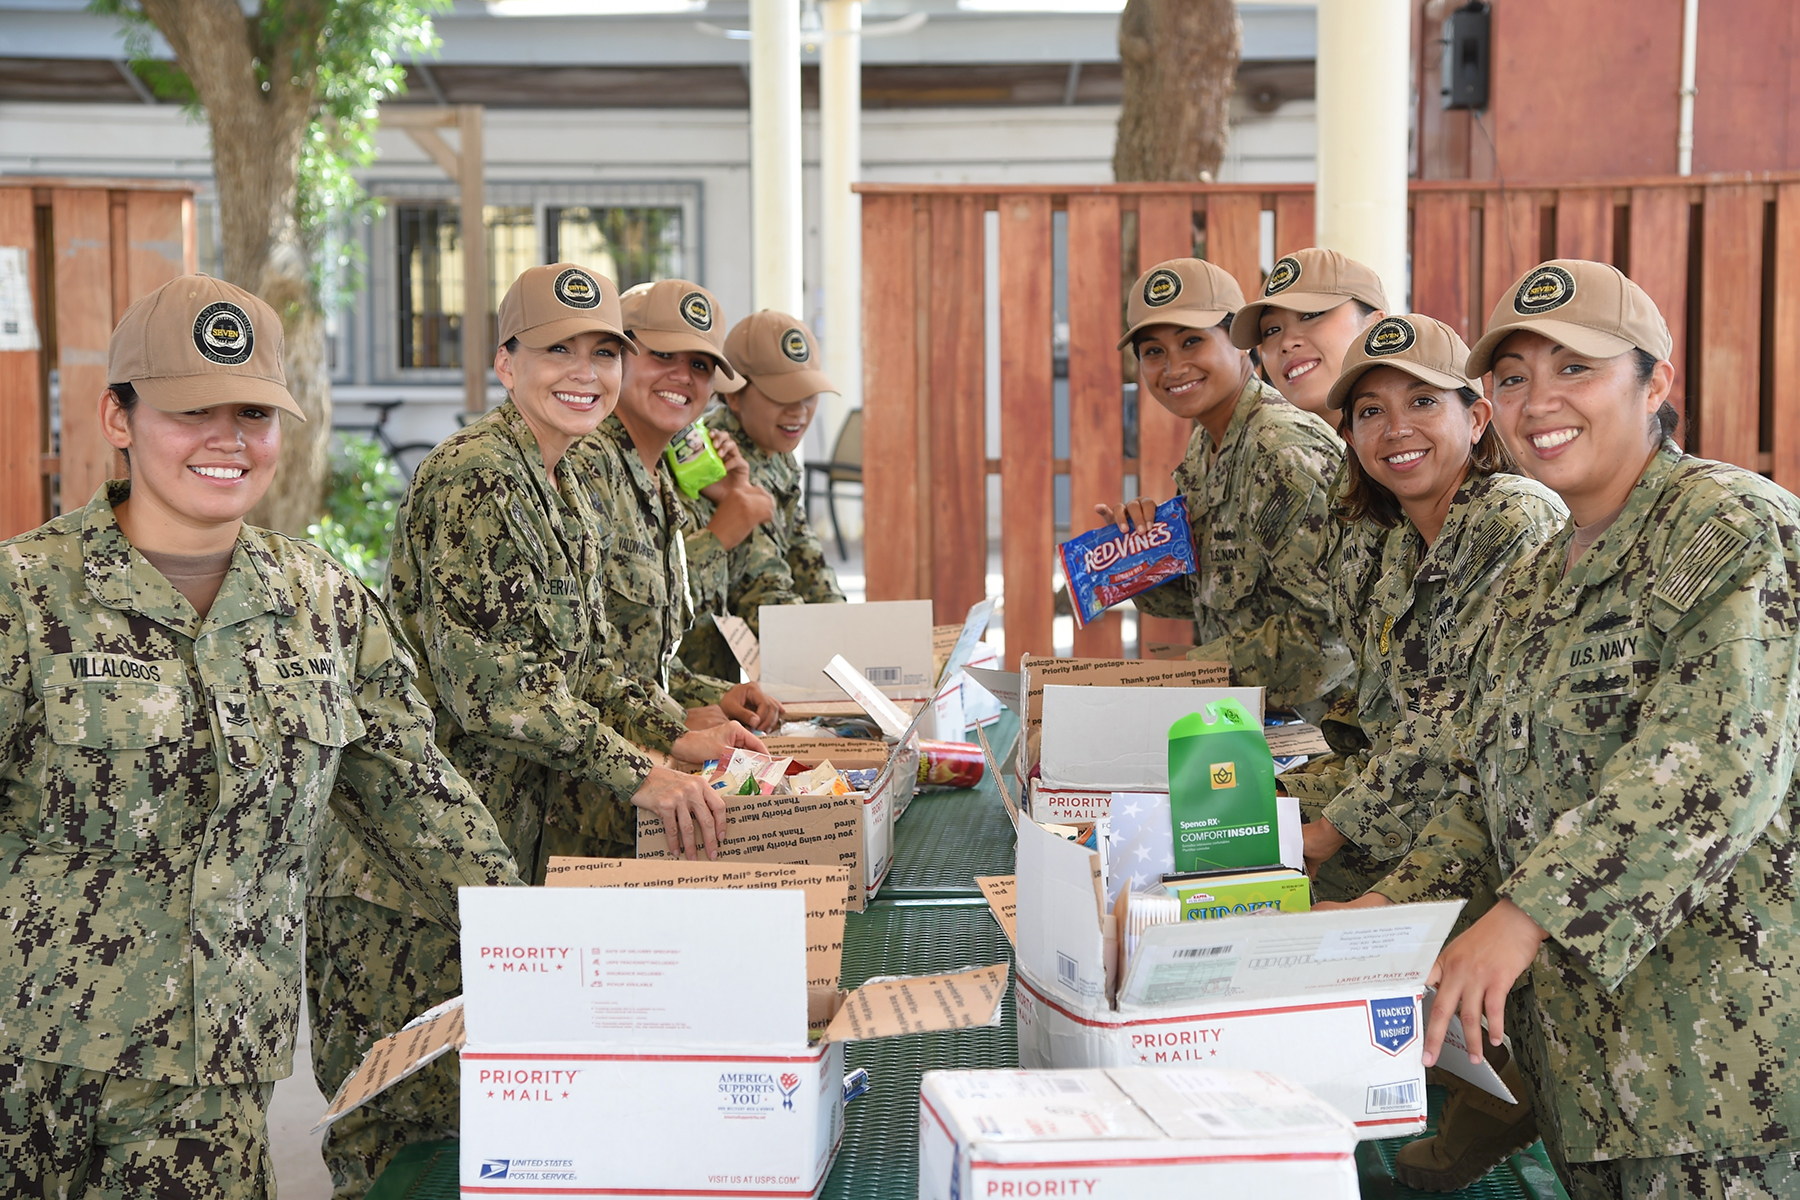 U.S. Navy Coastal Riverine Squadron 11 members are all smiles after receiving care packages for female service members, Dec. 17, 2016, at Camp Lemonnier, Djibouti. The Religious Affairs Office received 12 packages from the Mission Beach Women's Club in San Diego and distributed them to the service members in CRS 11. The CRS 11 Sailors patrol the local port to protect high-value-assets. (U.S. Air National Guard photo by Staff Sgt. Penny Snoozy)